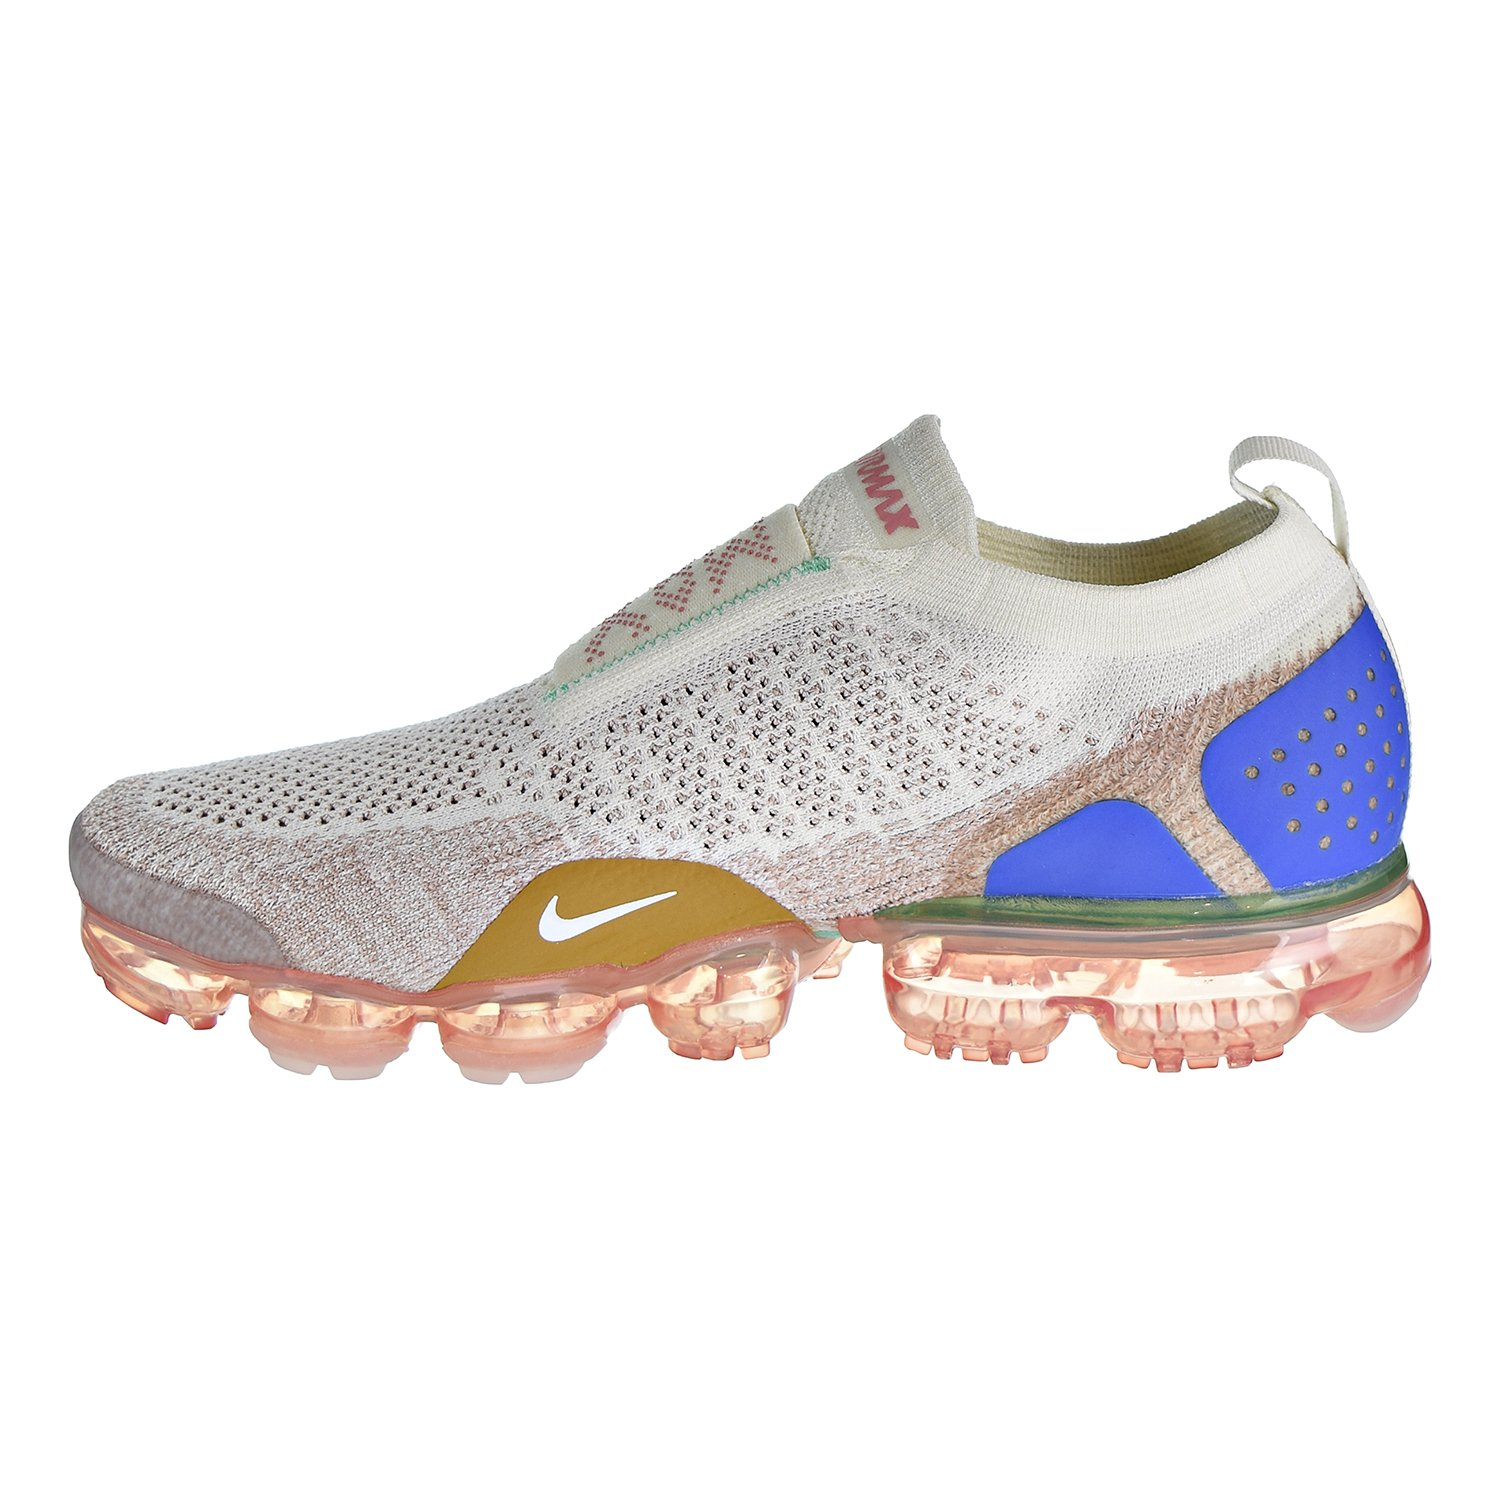 cf4c909442 Amazon.com | Nike Air Vapormax Fk Moc 2 Mens Ah7006-100 | Running